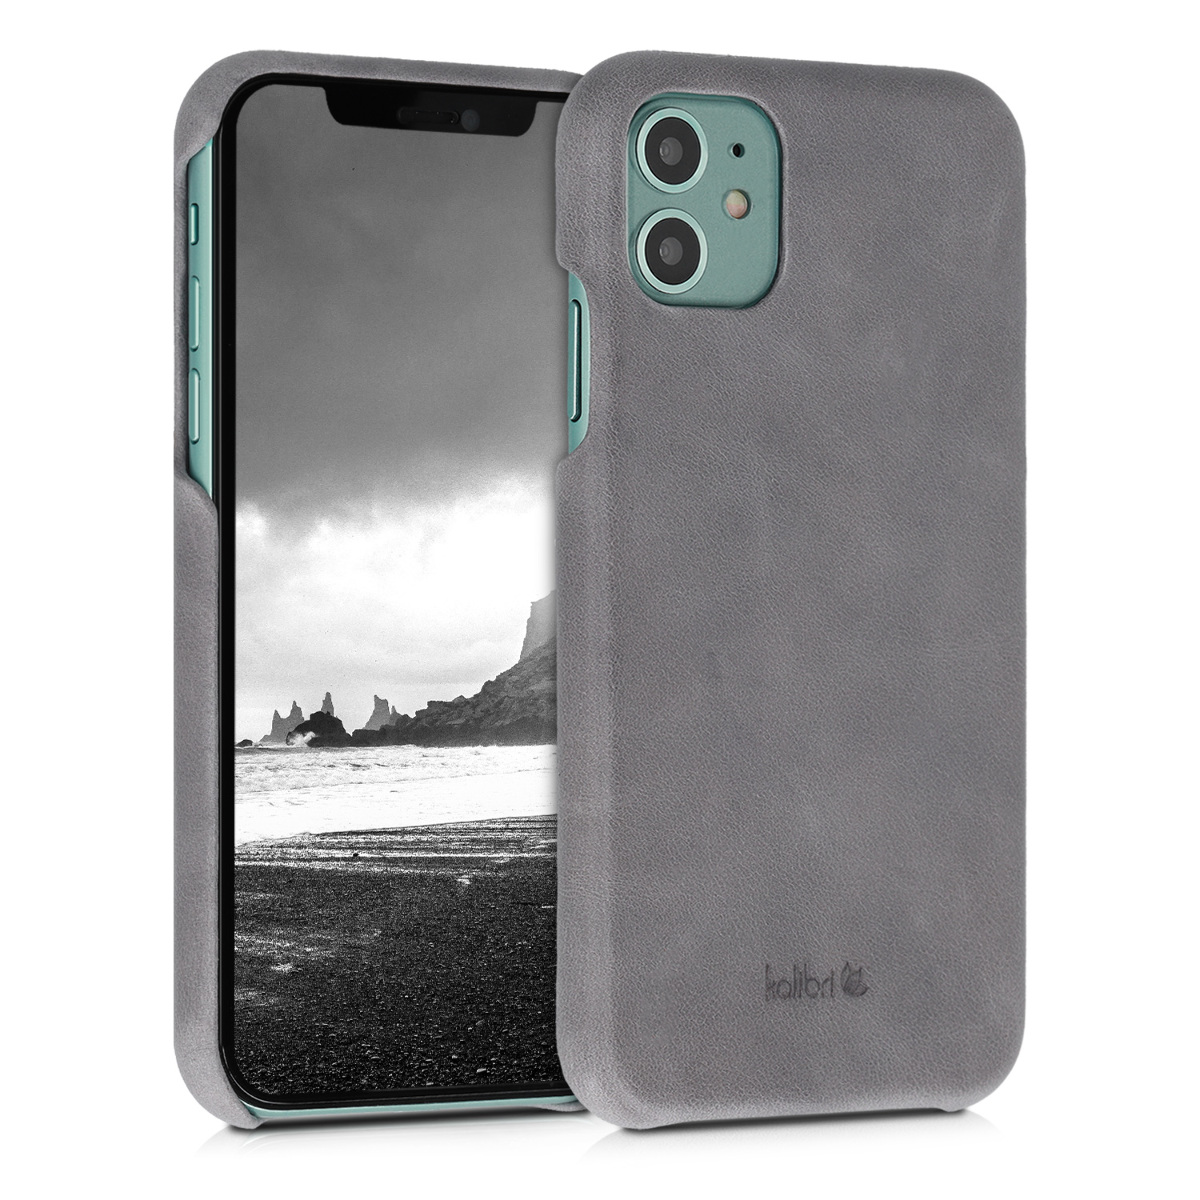 Kalibri Σκληρή Δερμάτινη Θήκη iPhone 11 - Smooth Genuine Leather Hard Case - Dark Grey (49737.19)